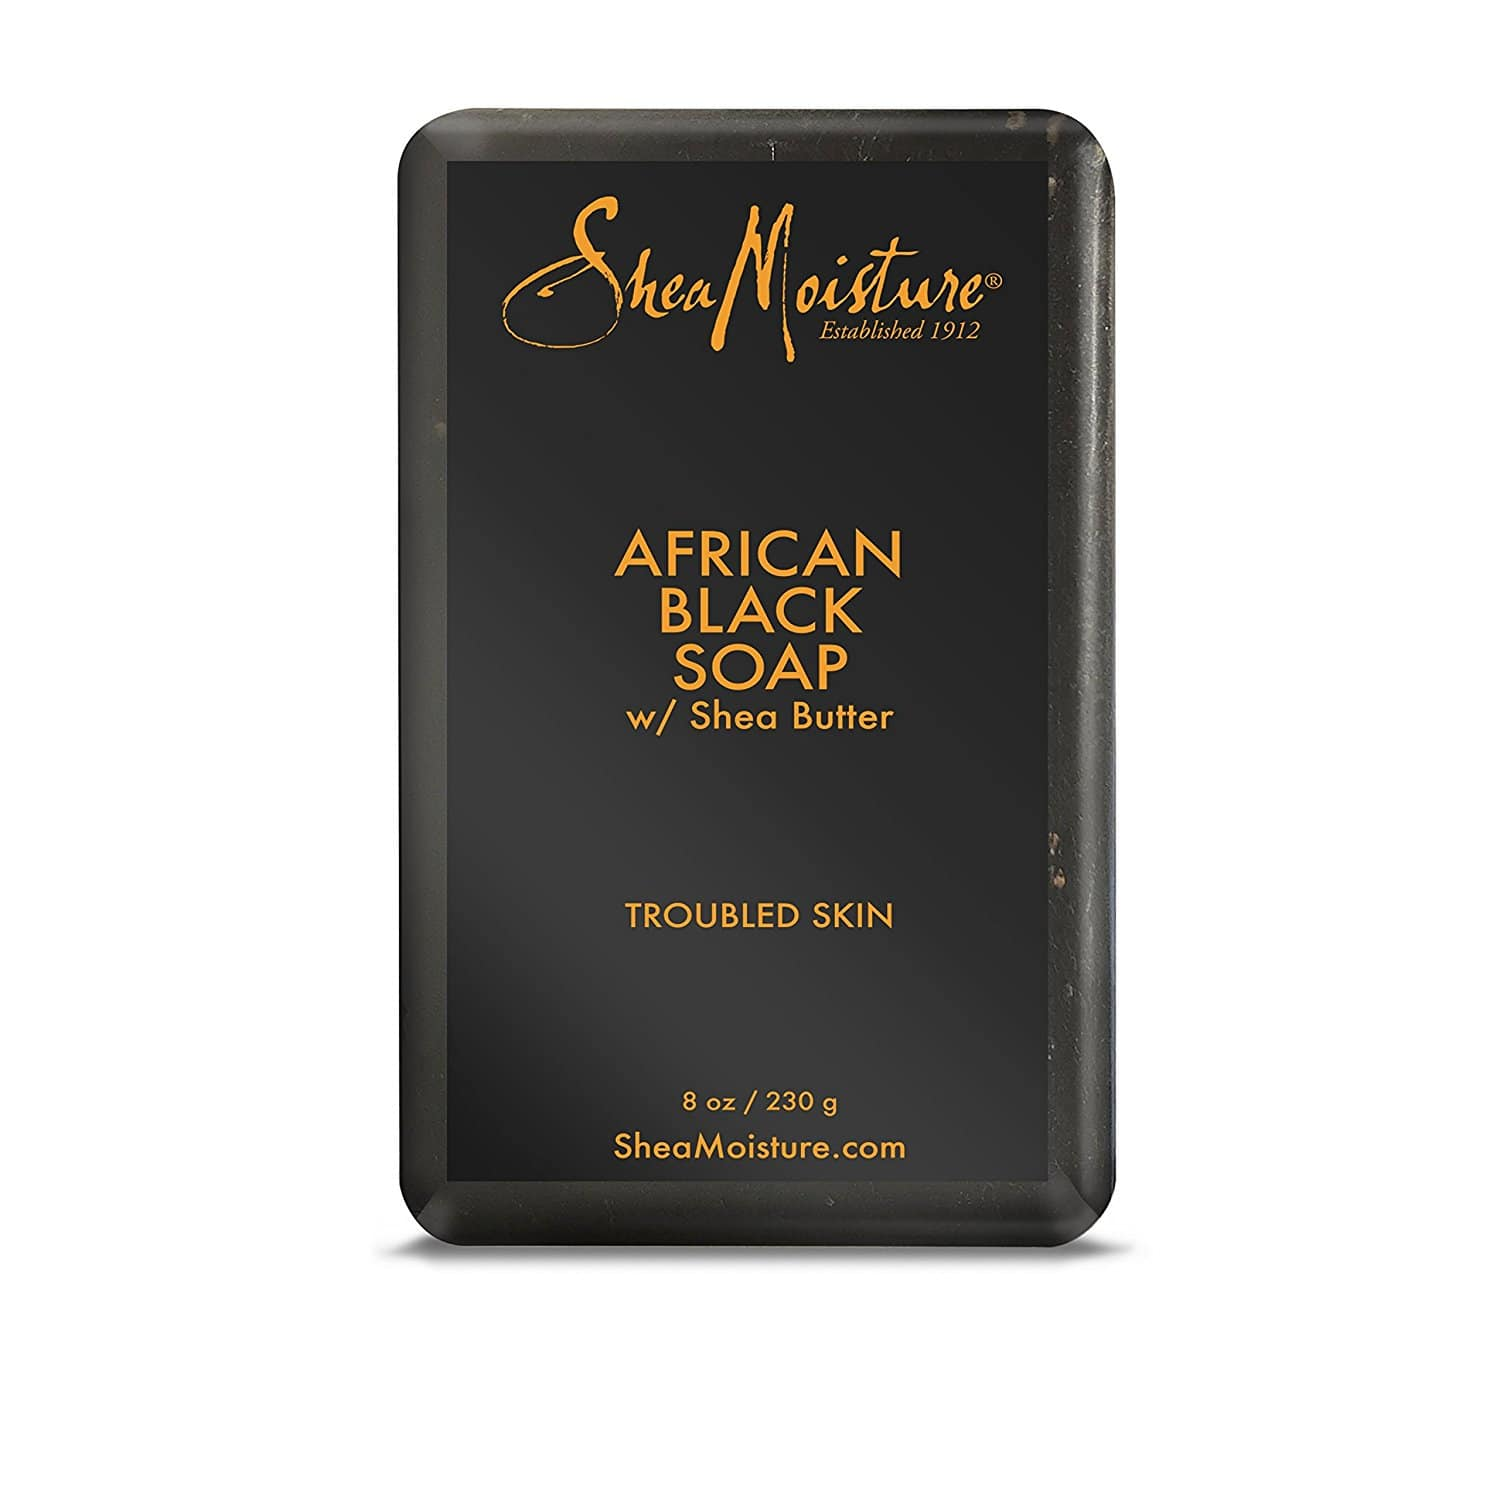 Shea Moisture African Black Soap With Shea Butter 8 oz (add-on item) $3.49